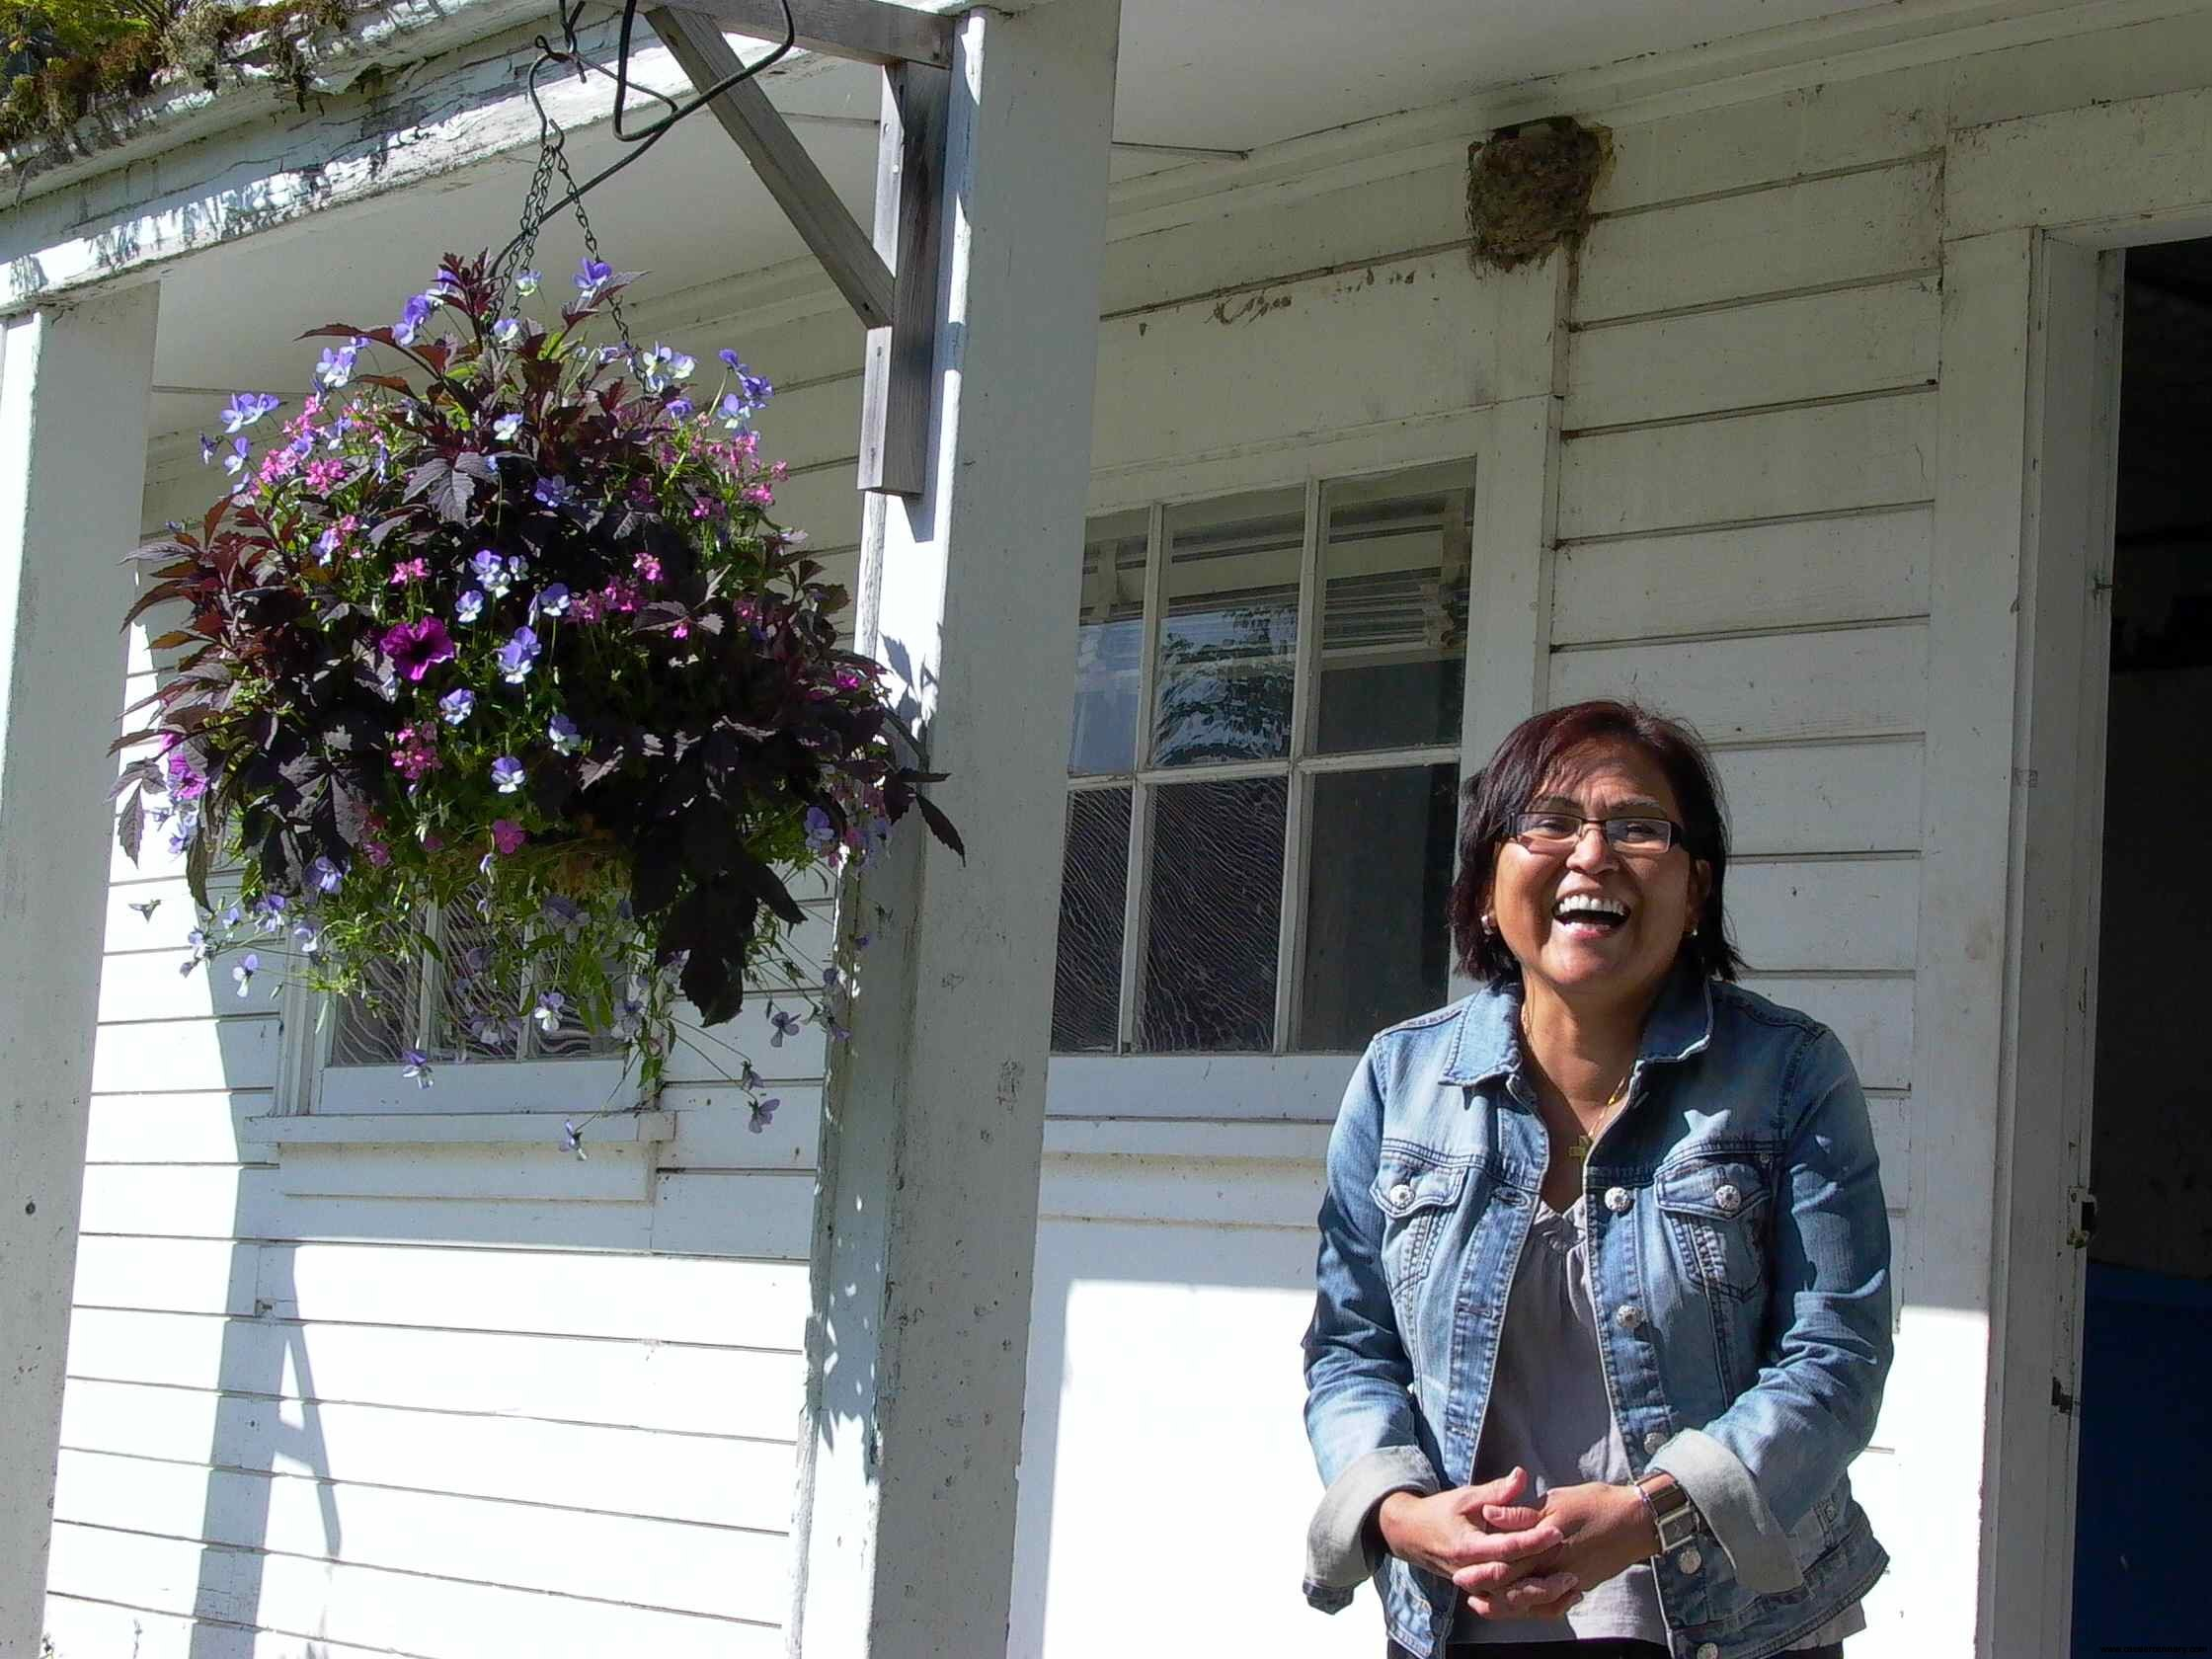 Cassiar Community - Aileen Smith, Prince Rupert - she was 14 when she got her first job at Cassiar and hasn't stopped working since.